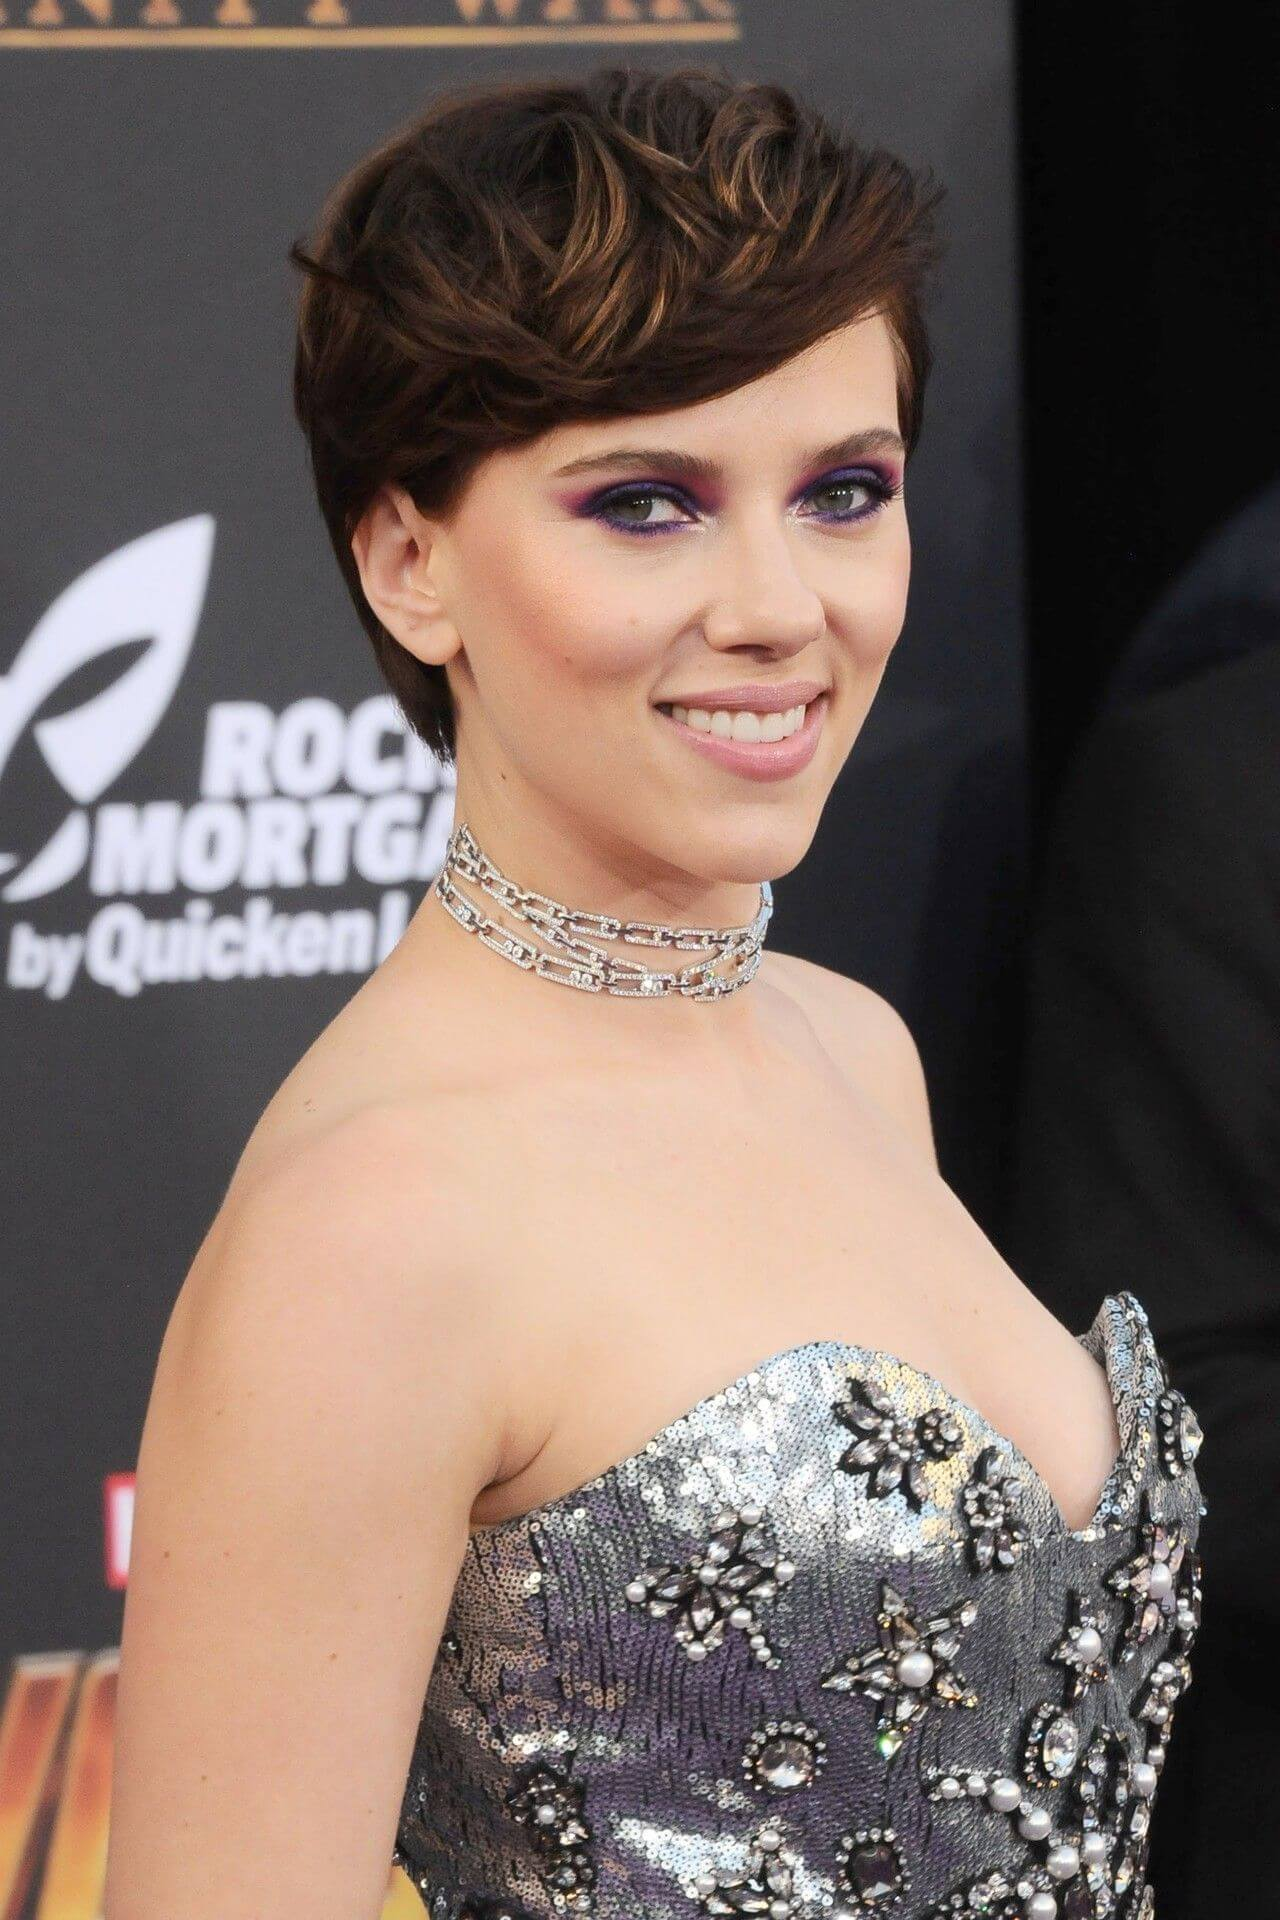 Scarlett Johansson Tops Forbes List of Highest Paid Female Actor in the World